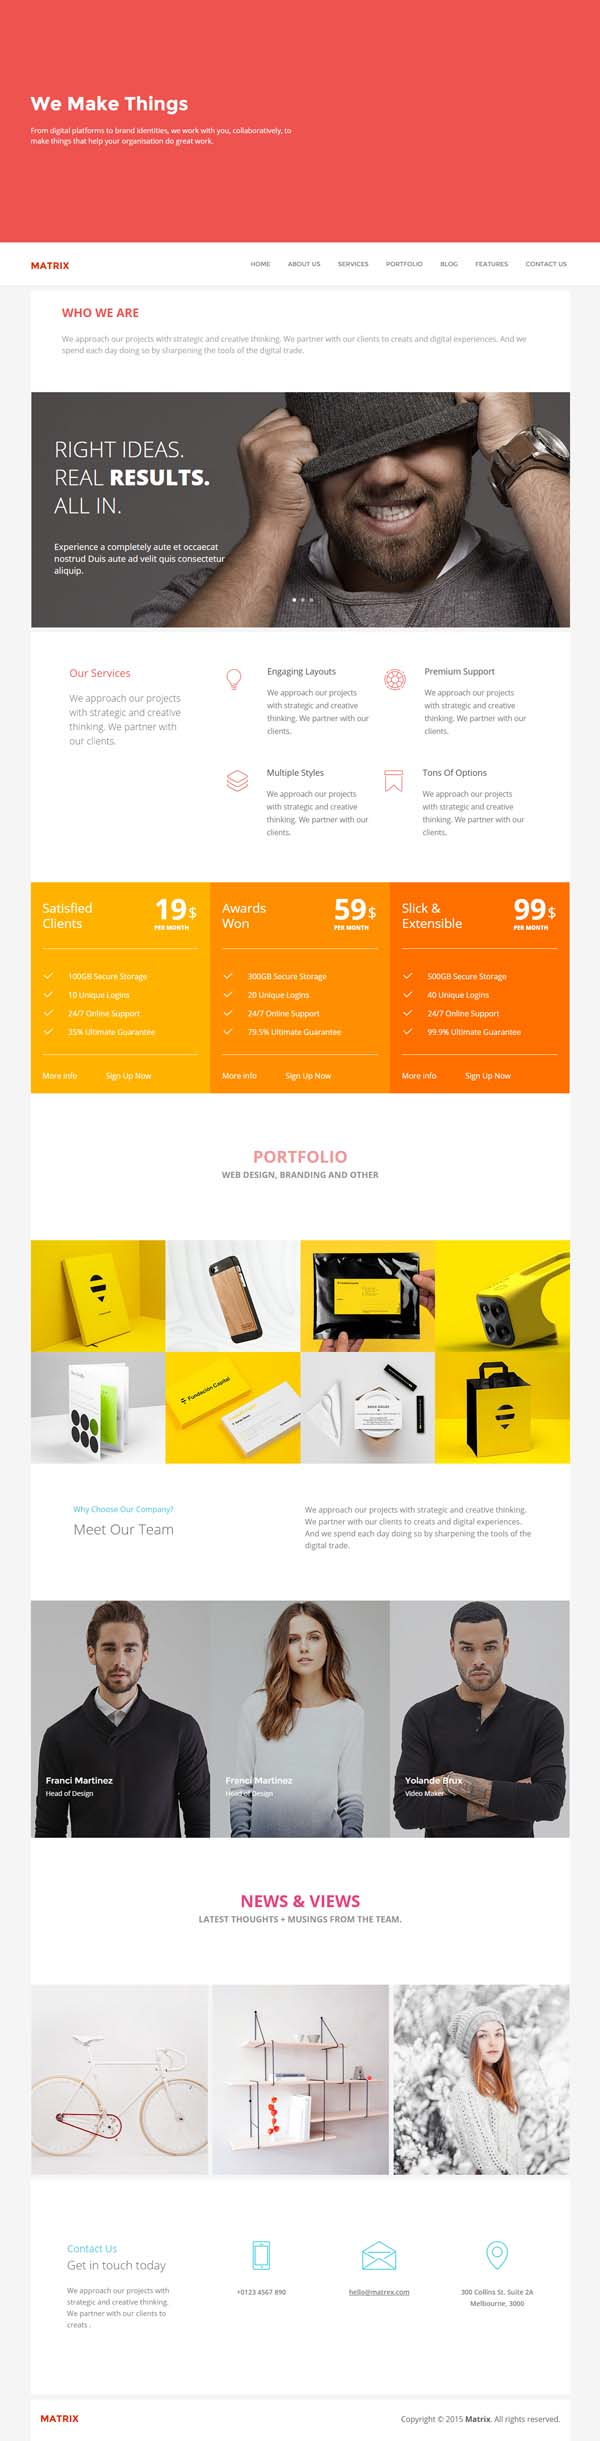 Matrix - Multipurpose Page Template